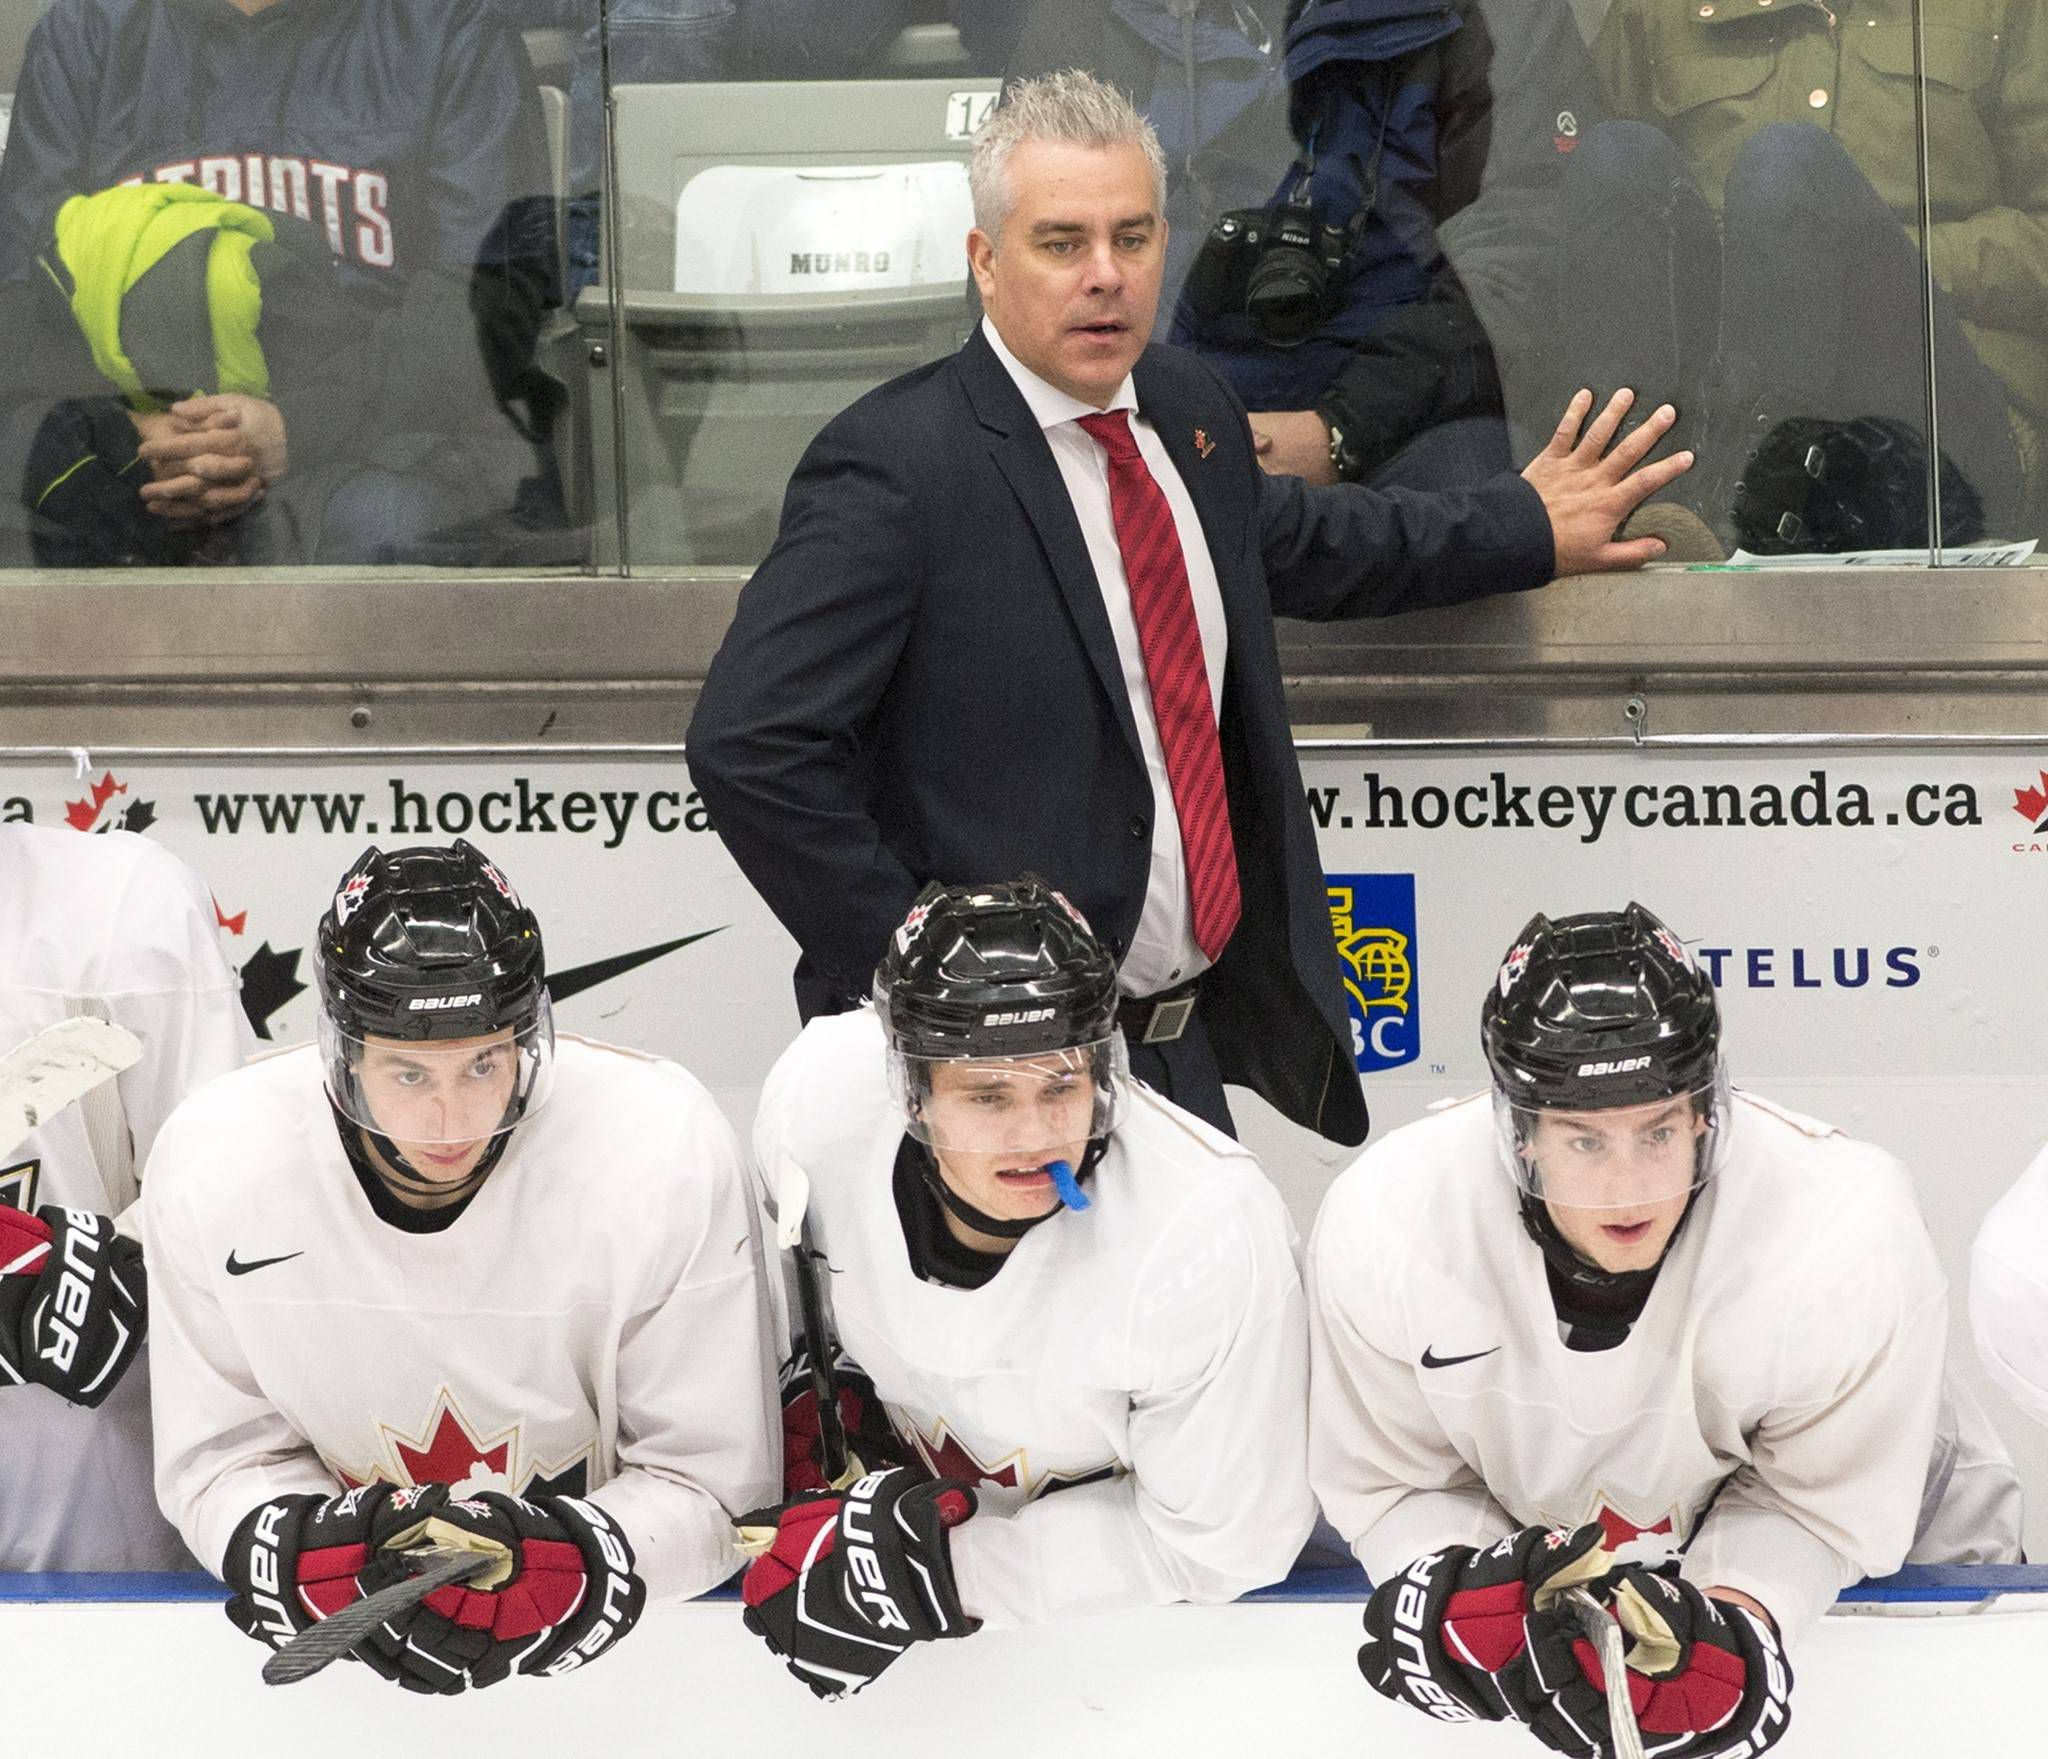 Even Without Big Names Hopes Are High For Team Canada In World